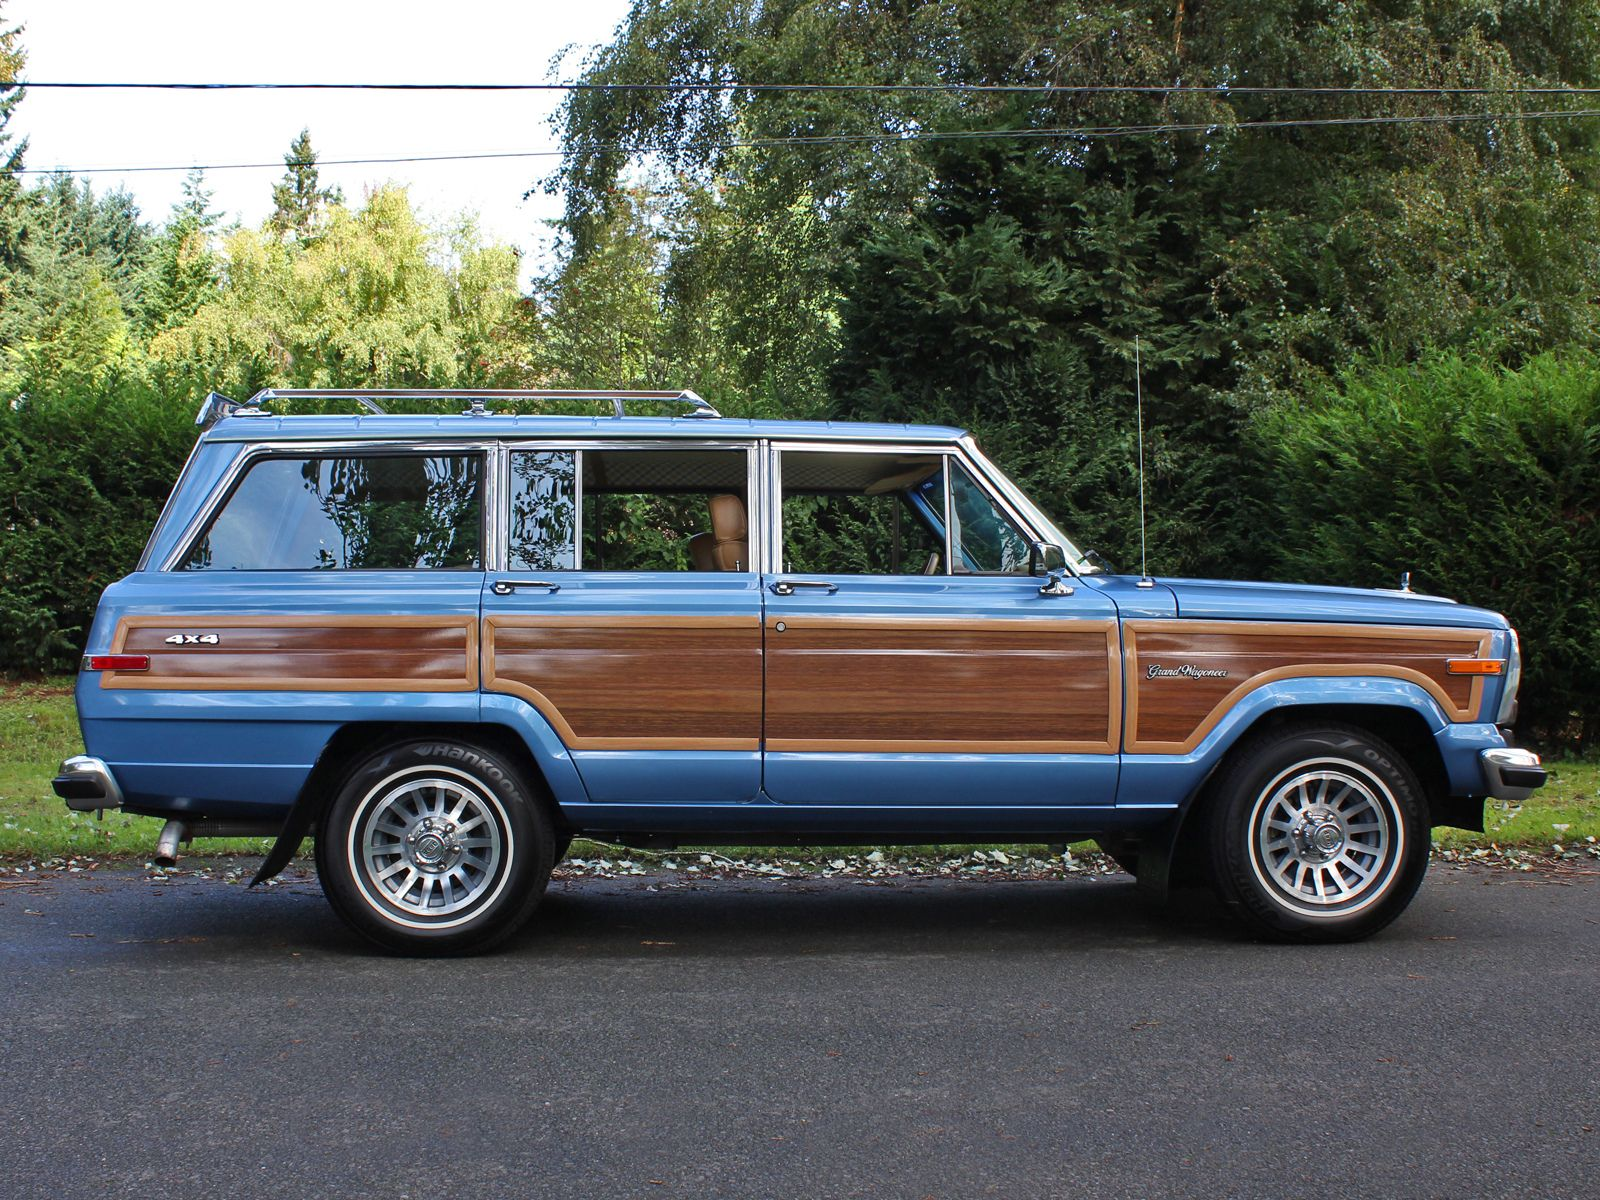 1988 jeep grand wagoneer spinnaker blue jeeps jeep wagoneer and jeep grand cherokee. Black Bedroom Furniture Sets. Home Design Ideas